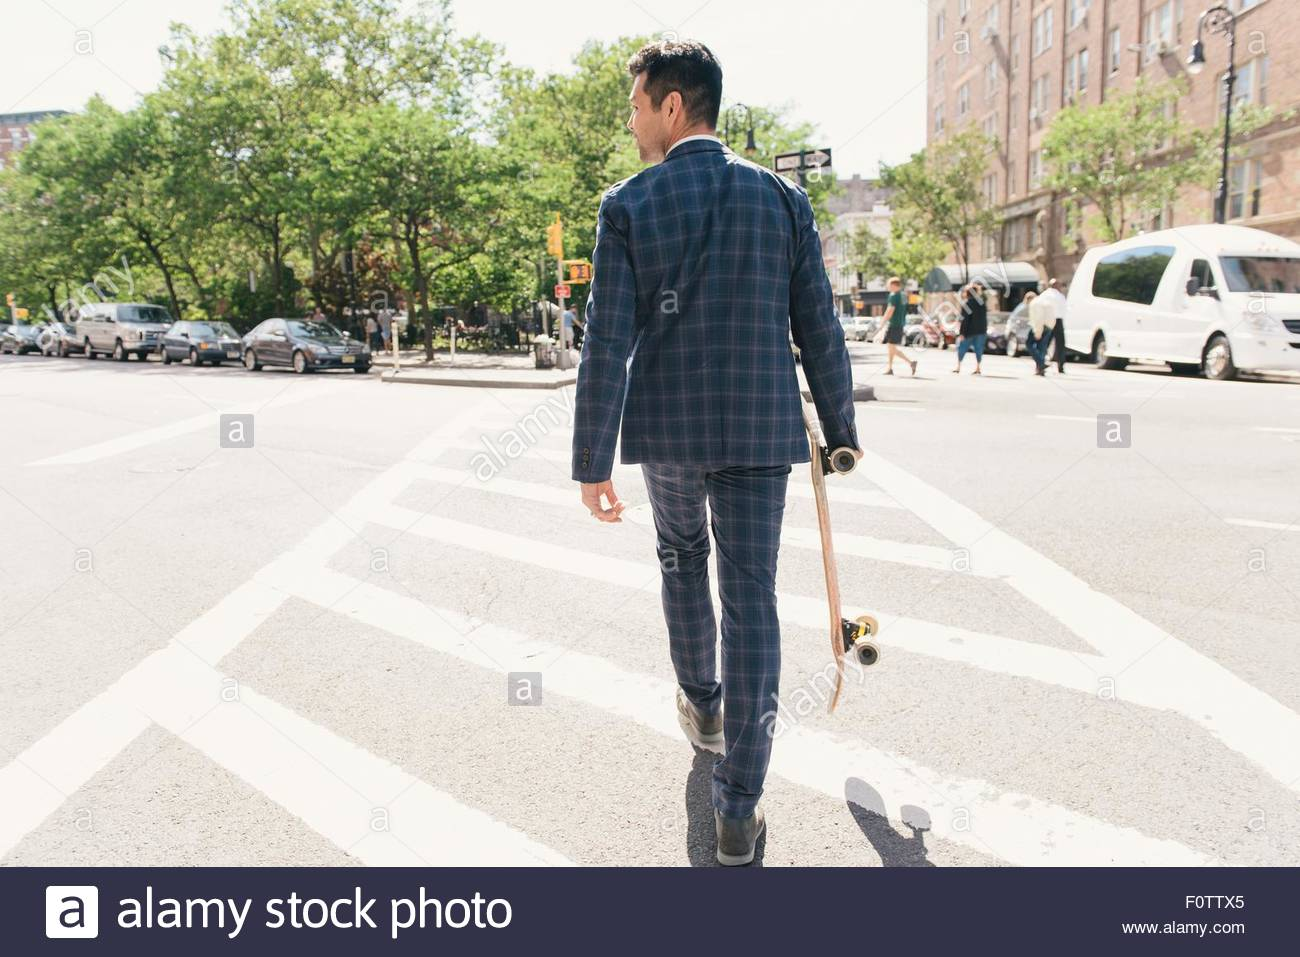 Rear view of suit wearing male skateboarder crossing road, West Village, Manhattan, USA - Stock Image